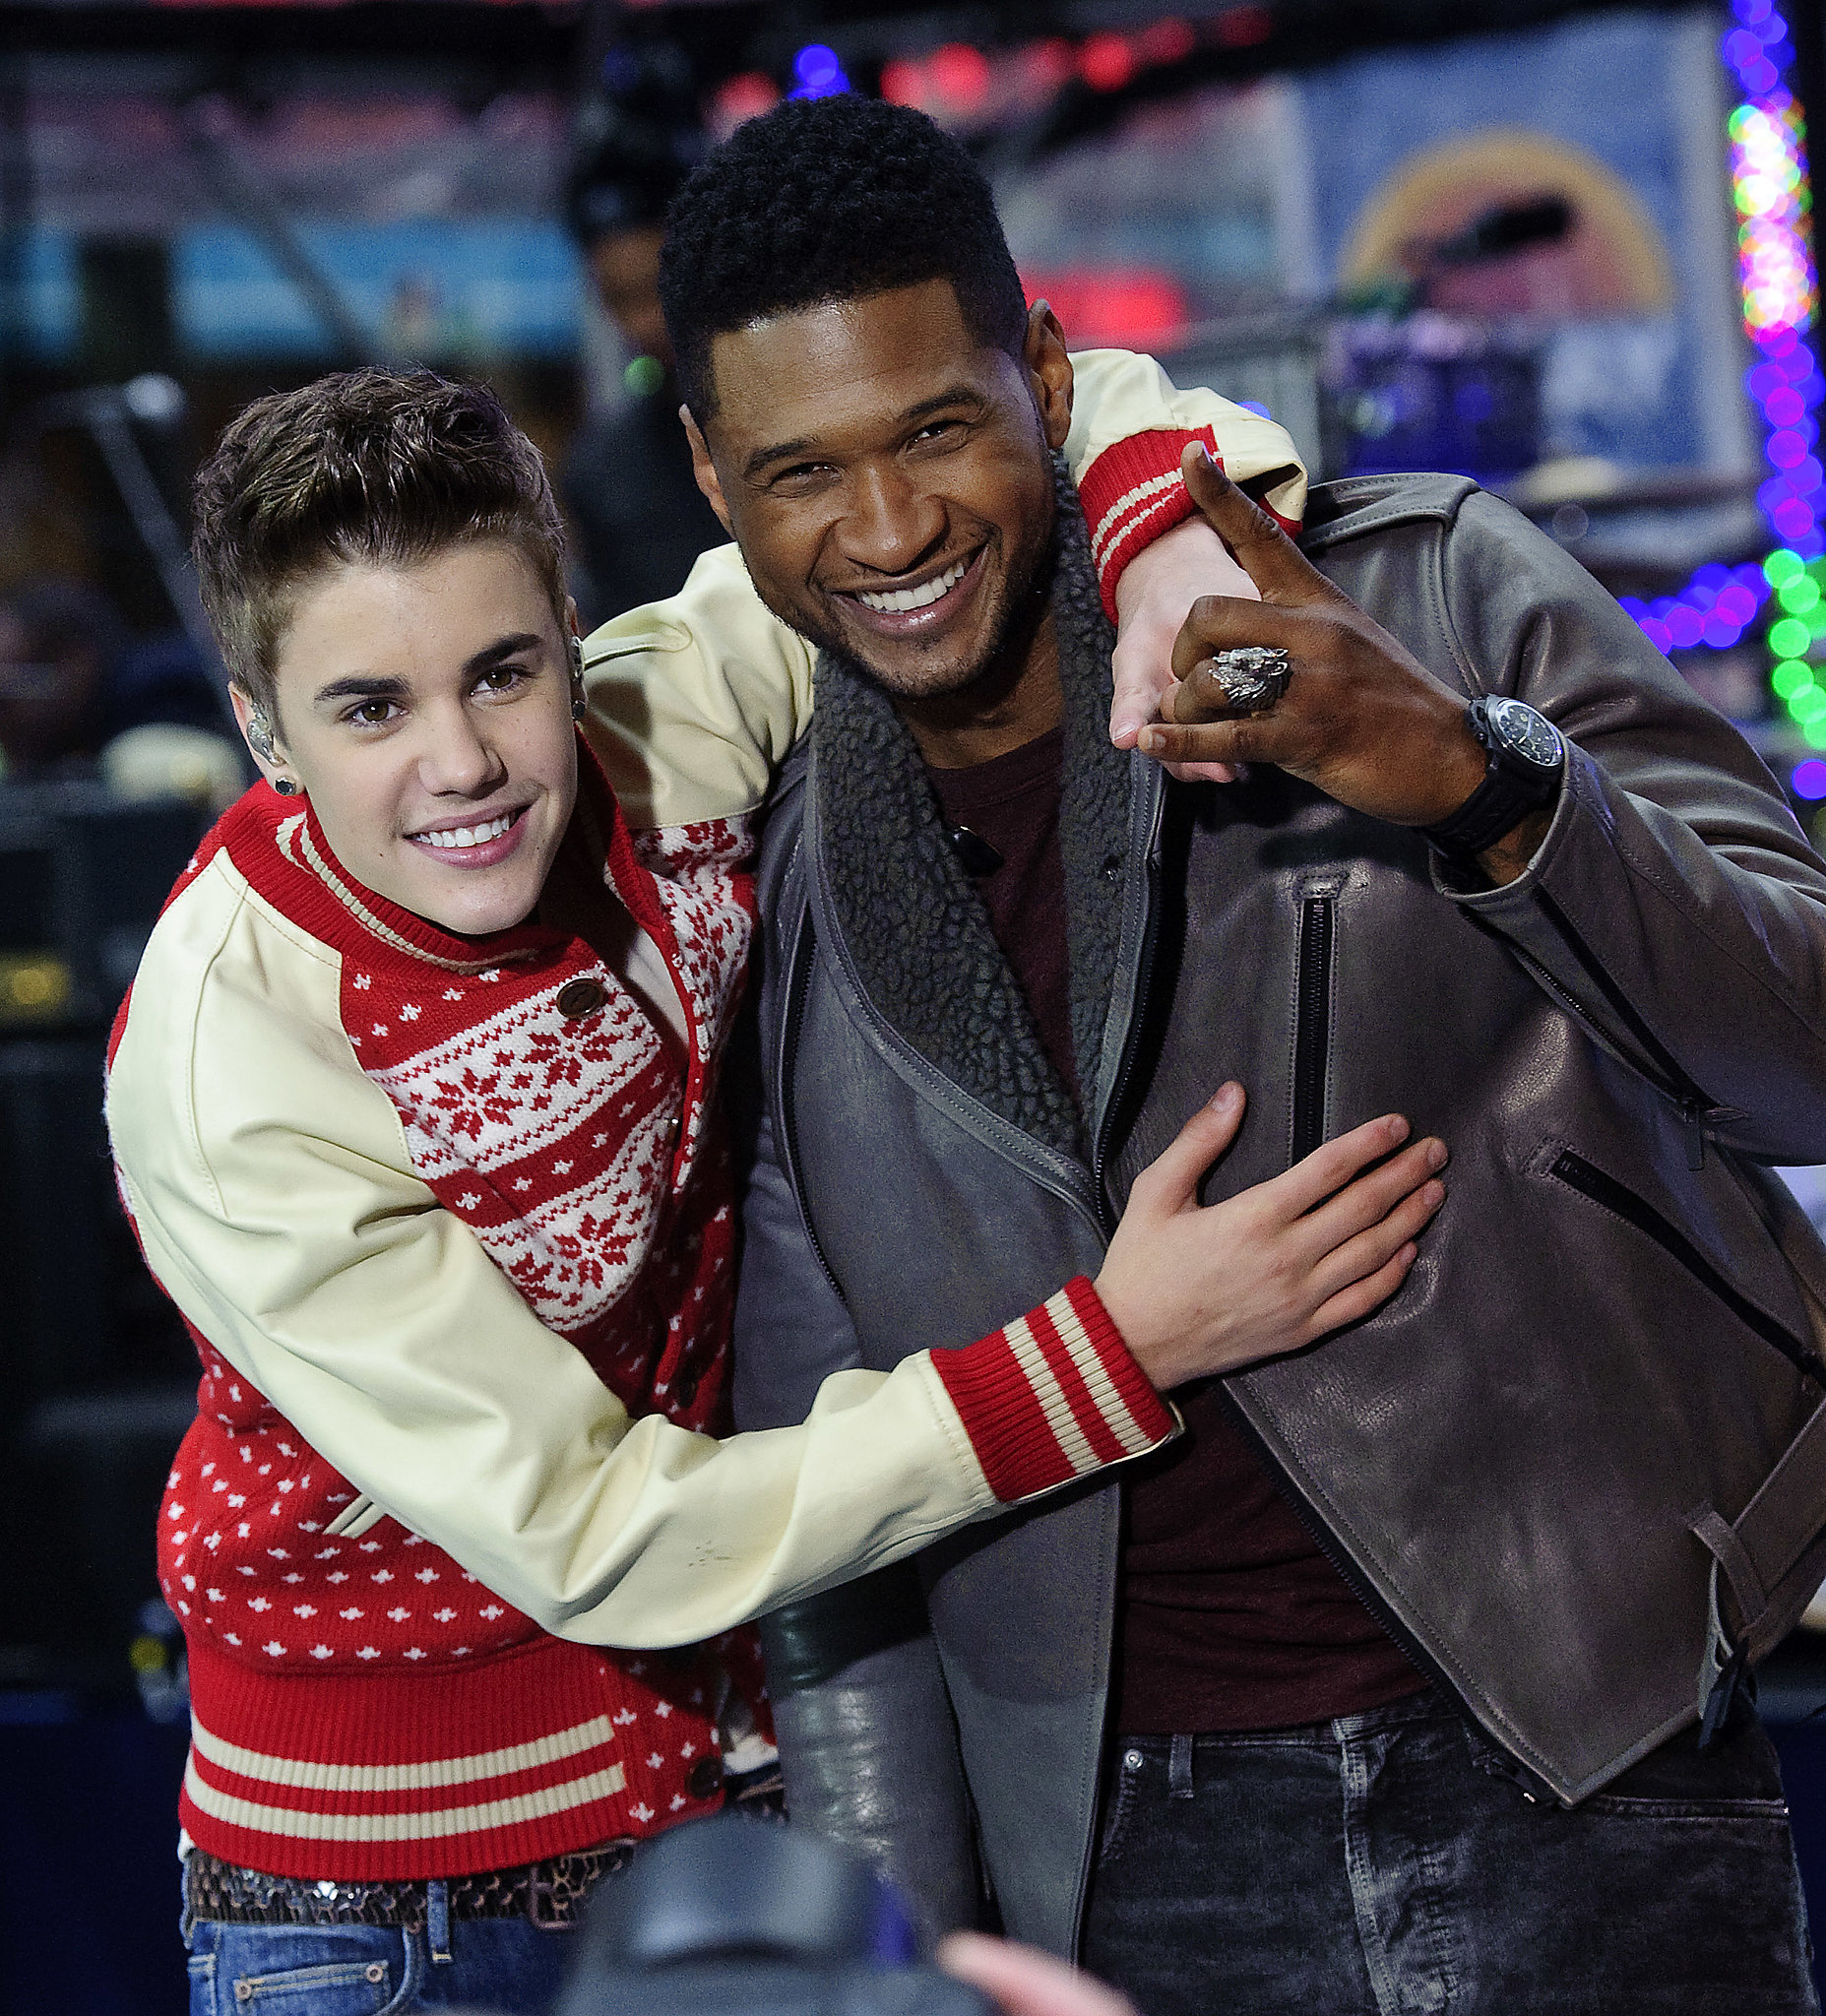 Justin Bieber used to idolize Usher, and now the singer is one of his